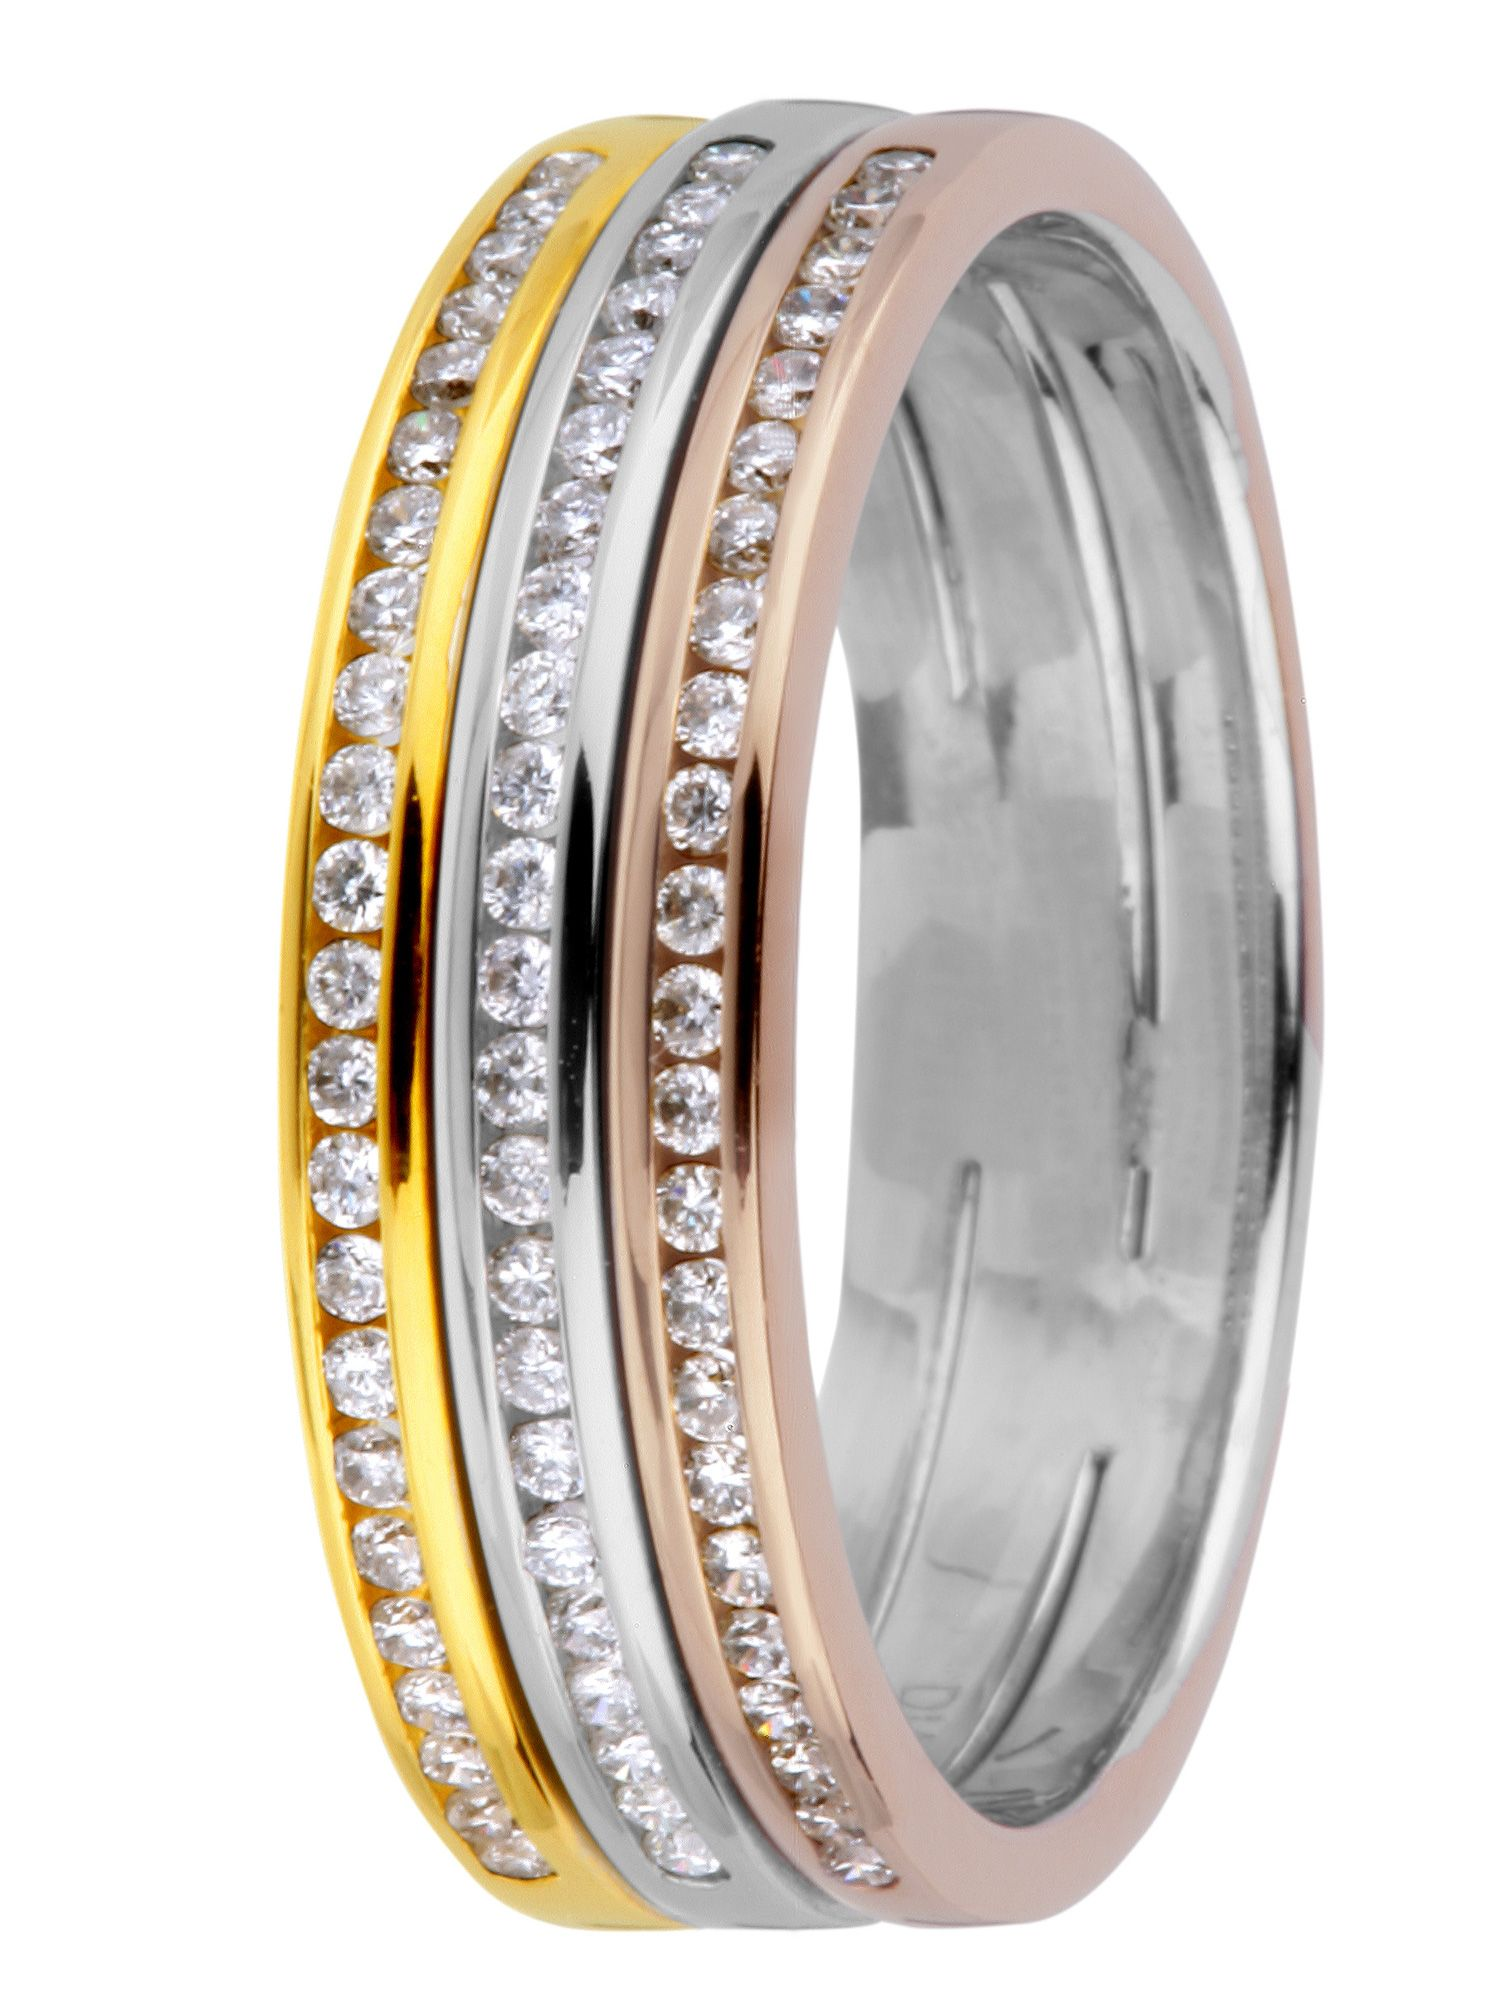 Brides 18ct gold 0.50ct diamond wedding ring - Multi-Coloured